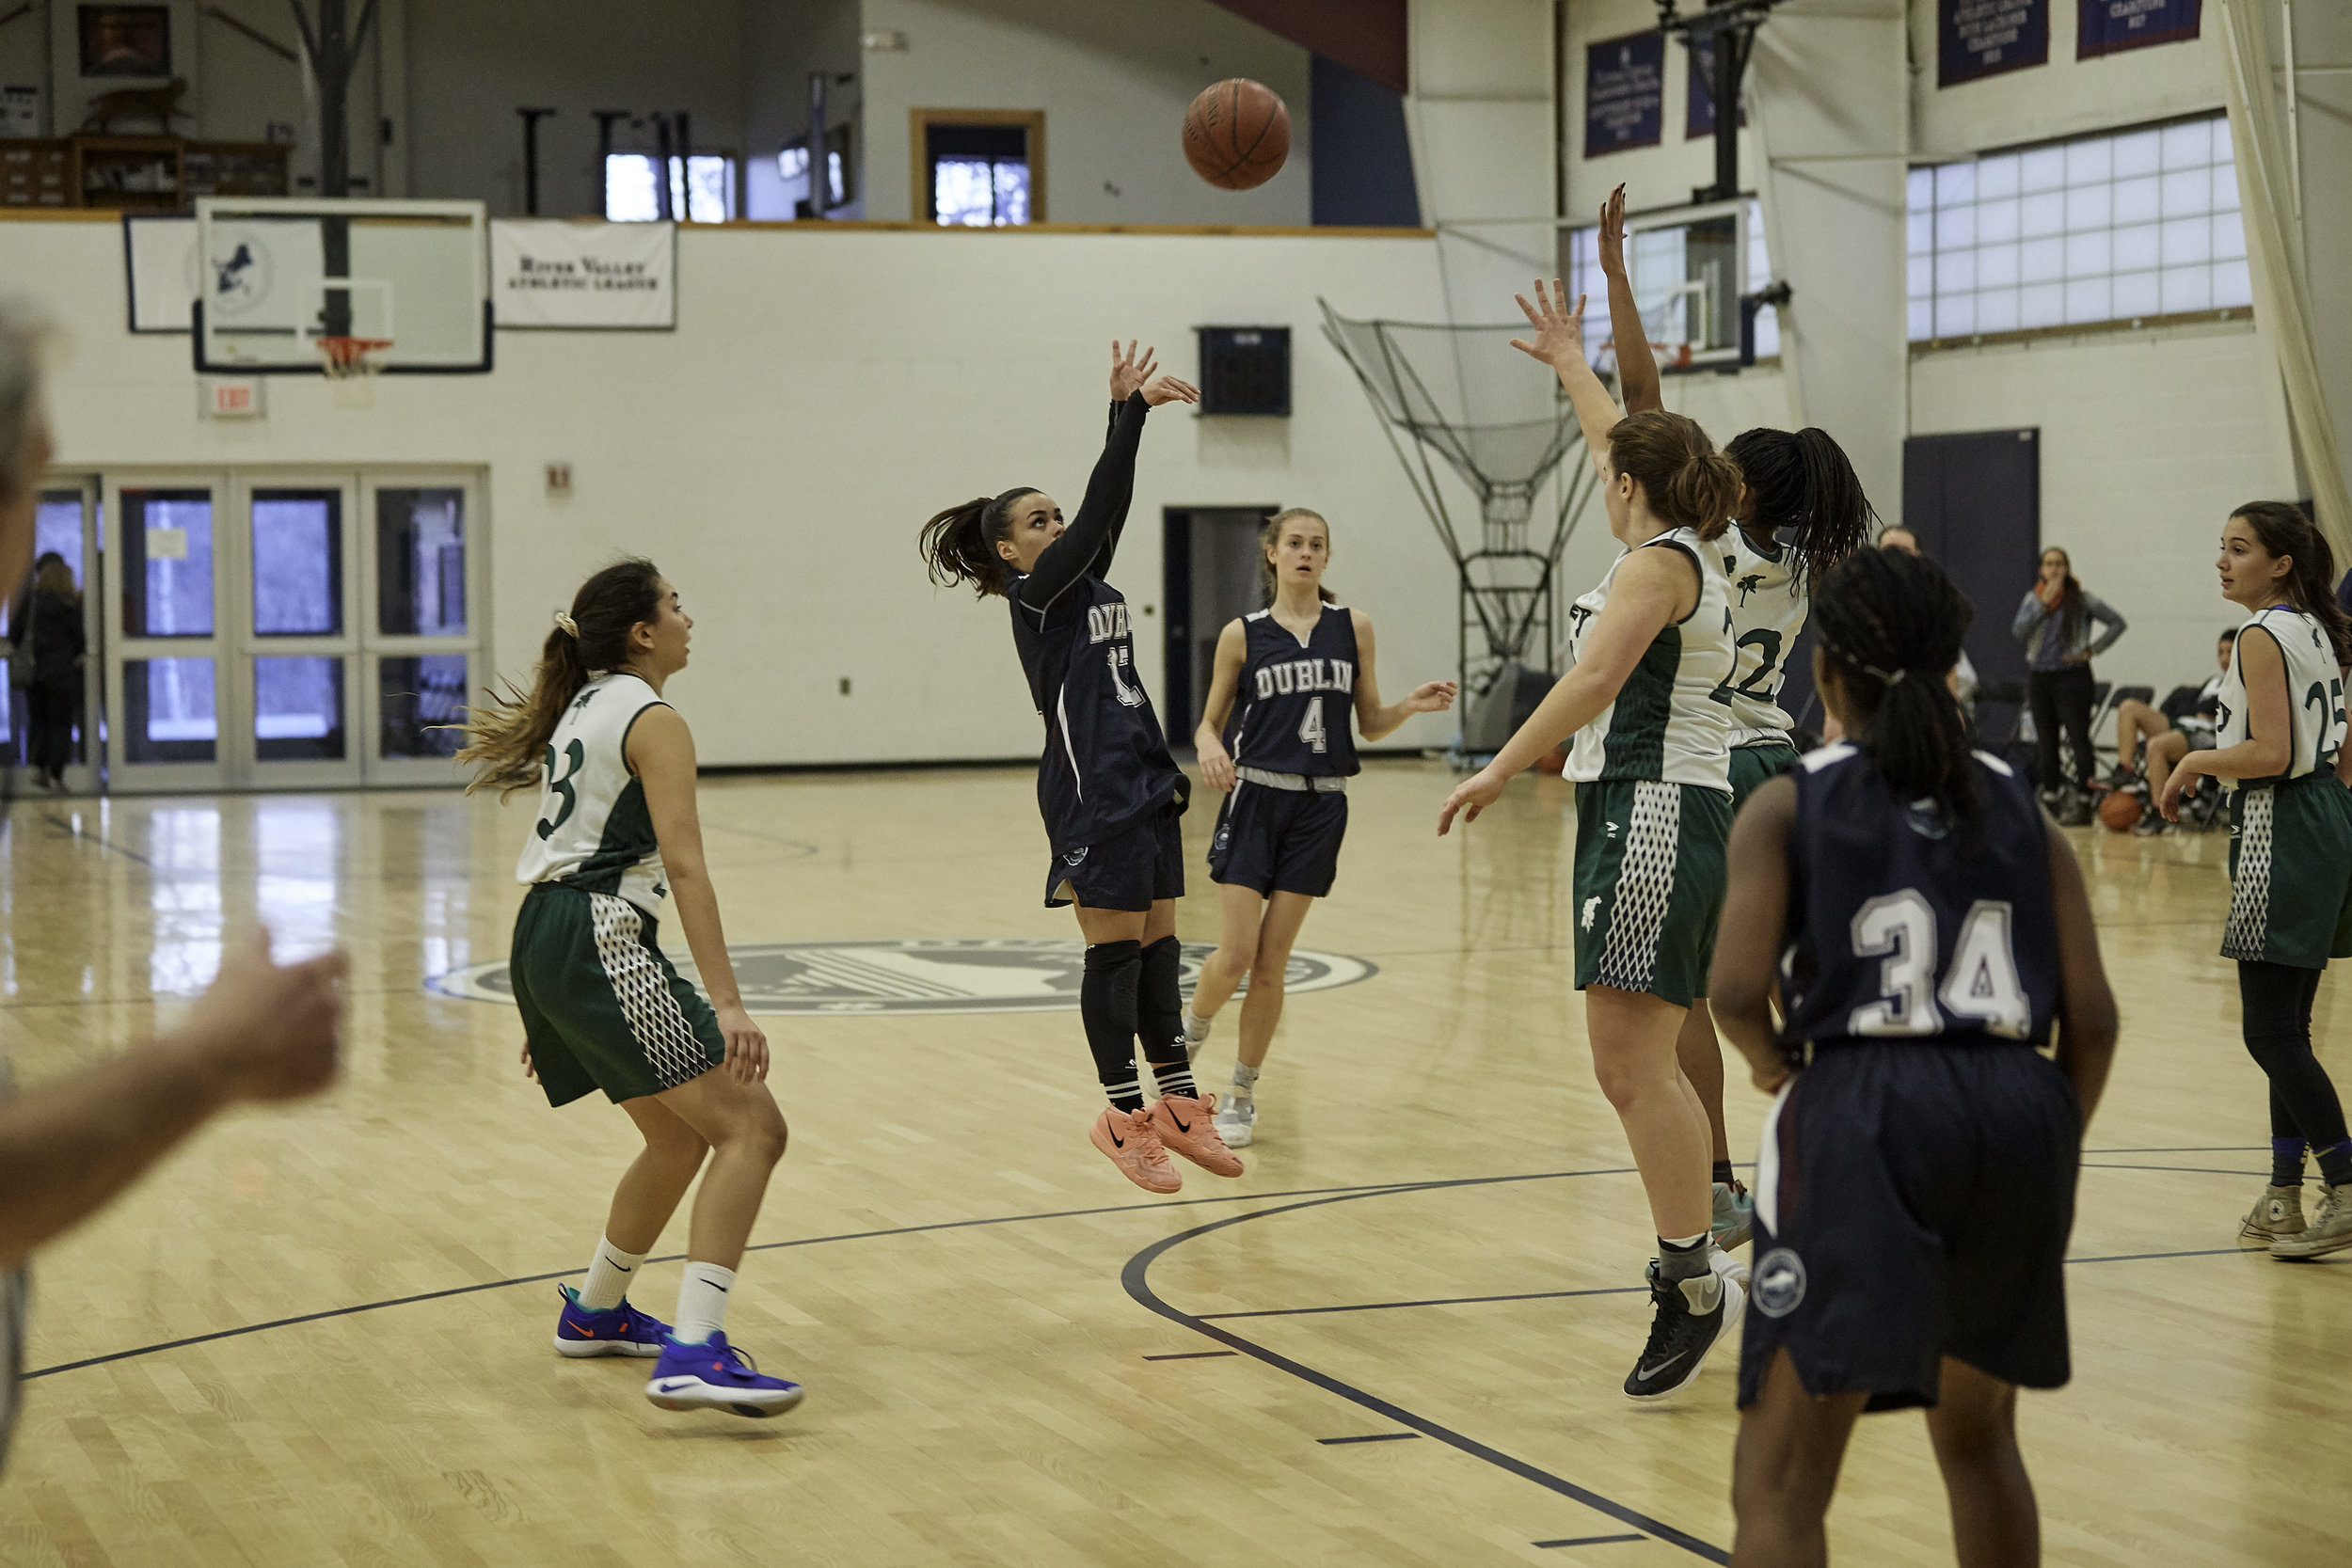 Basketball vs Putney School, February 9, 2019 - 167511.jpg